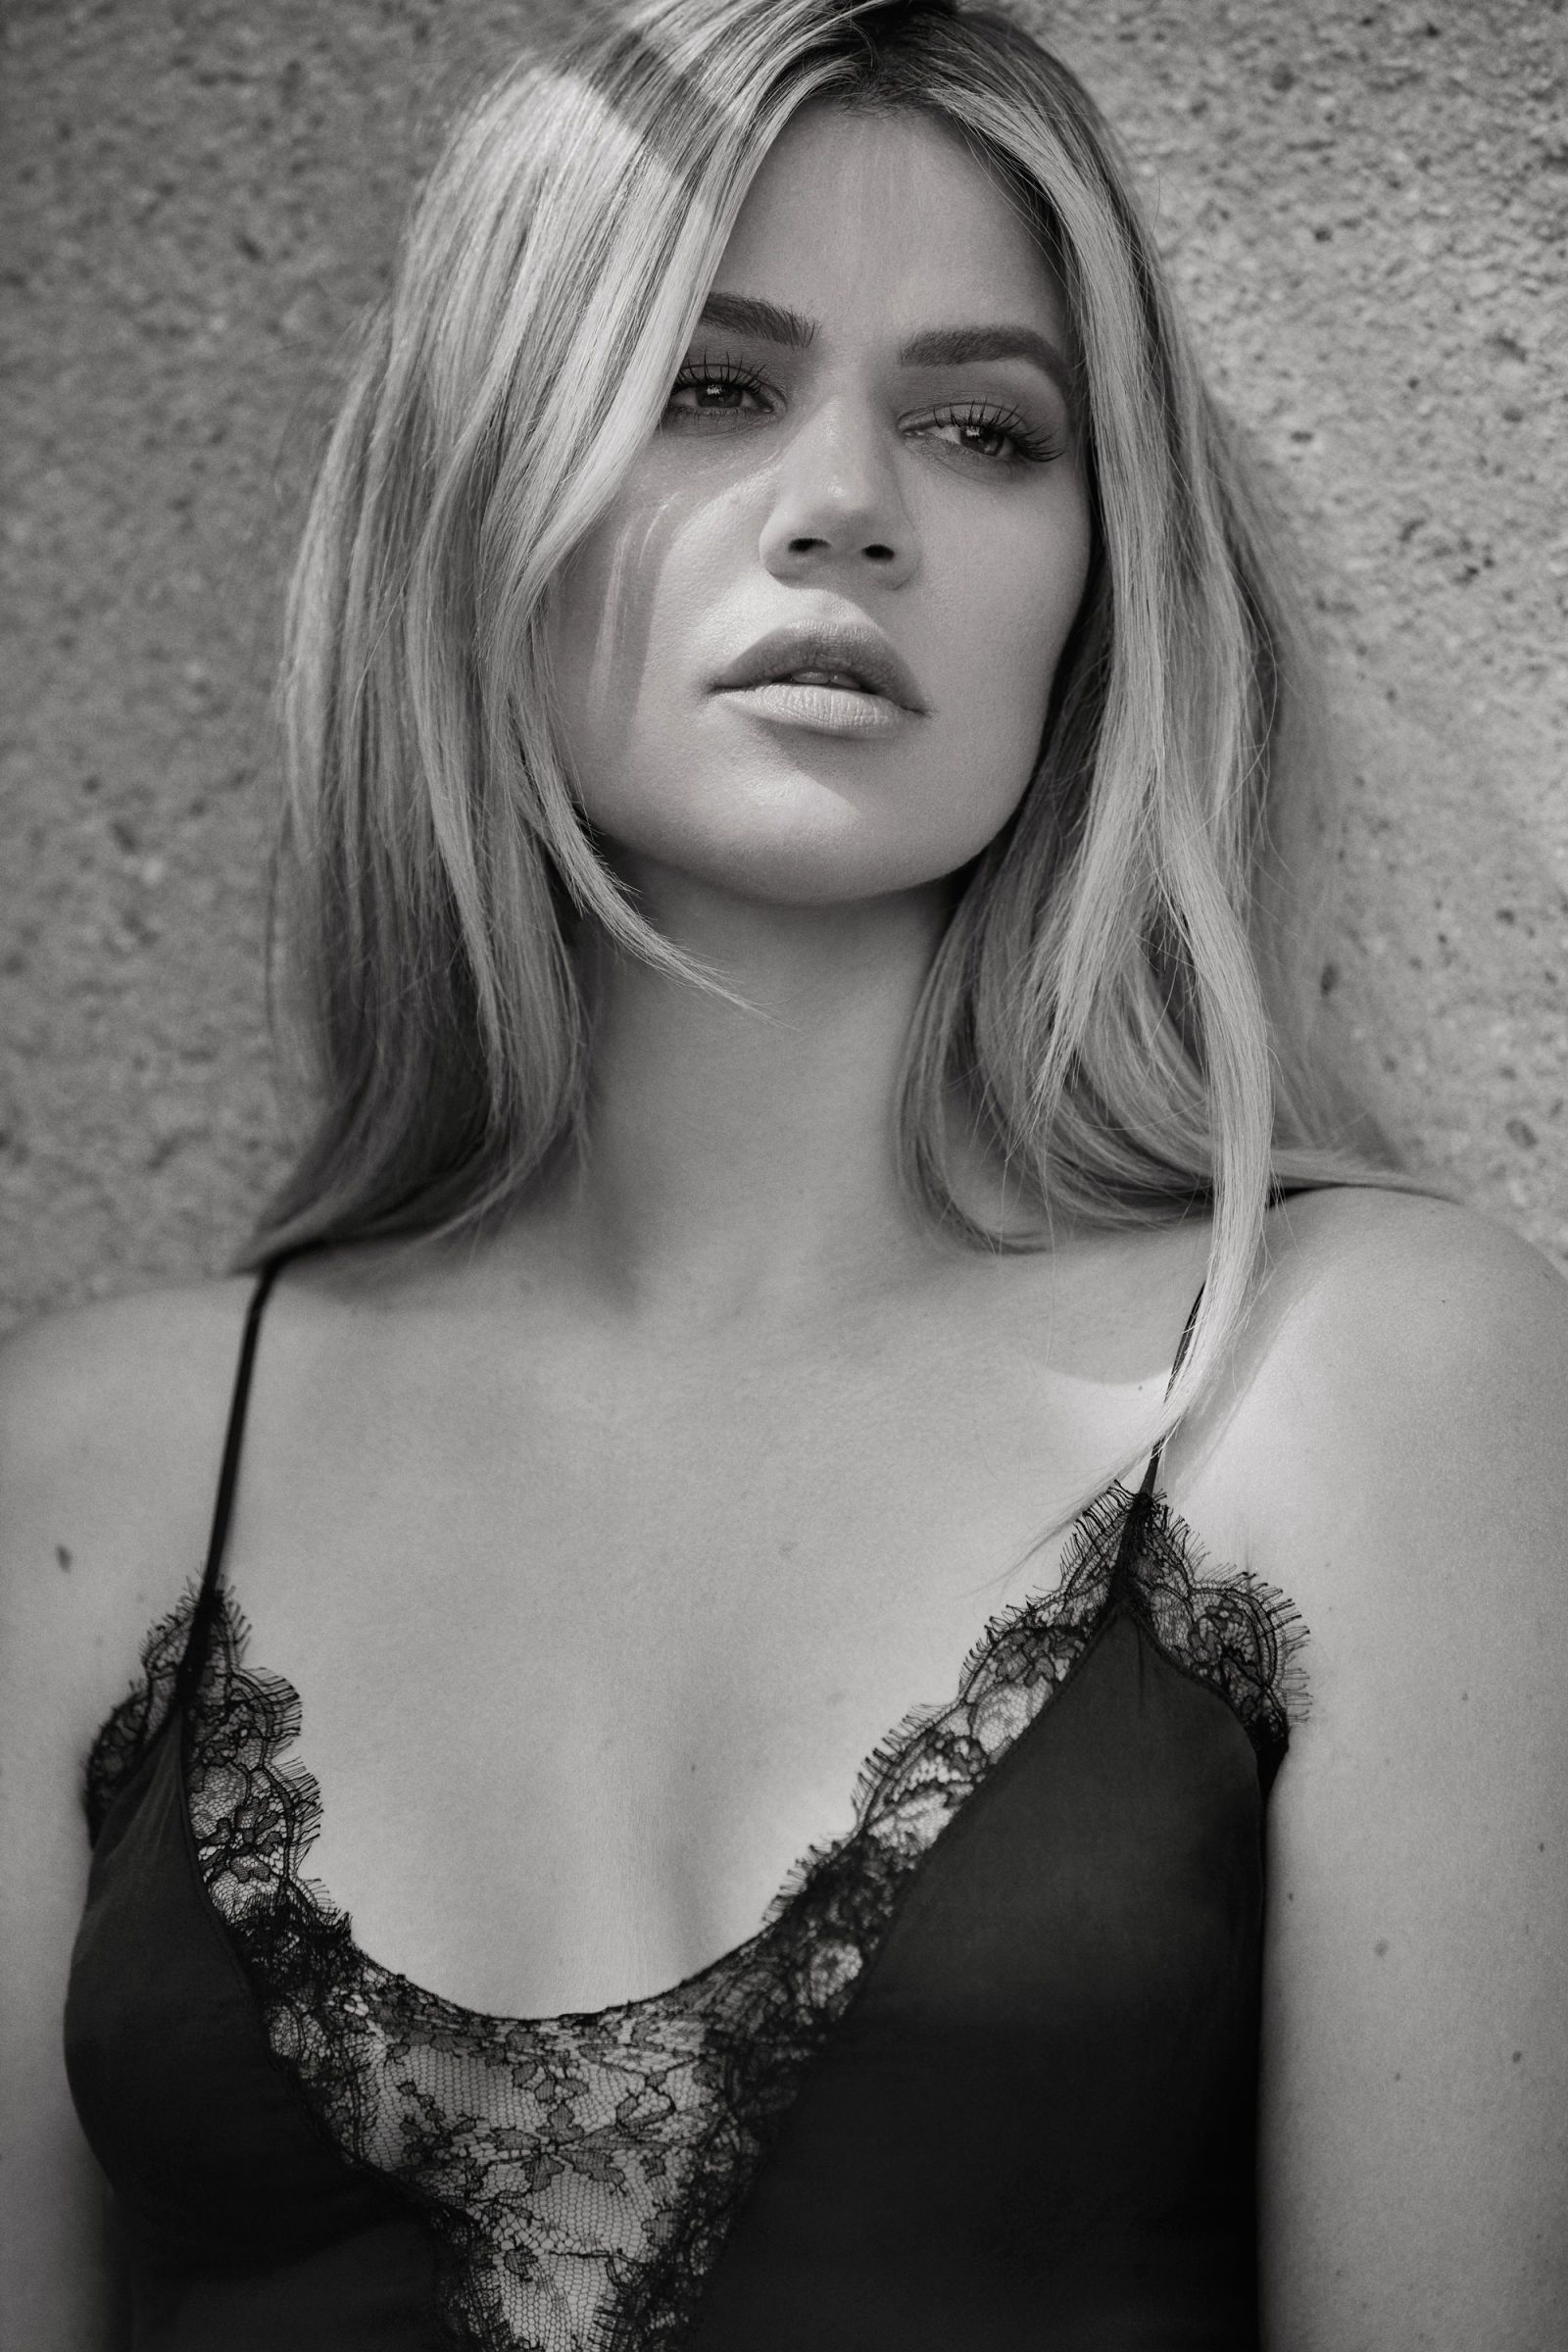 Khloé Kardashian Like You've Never Seen Her